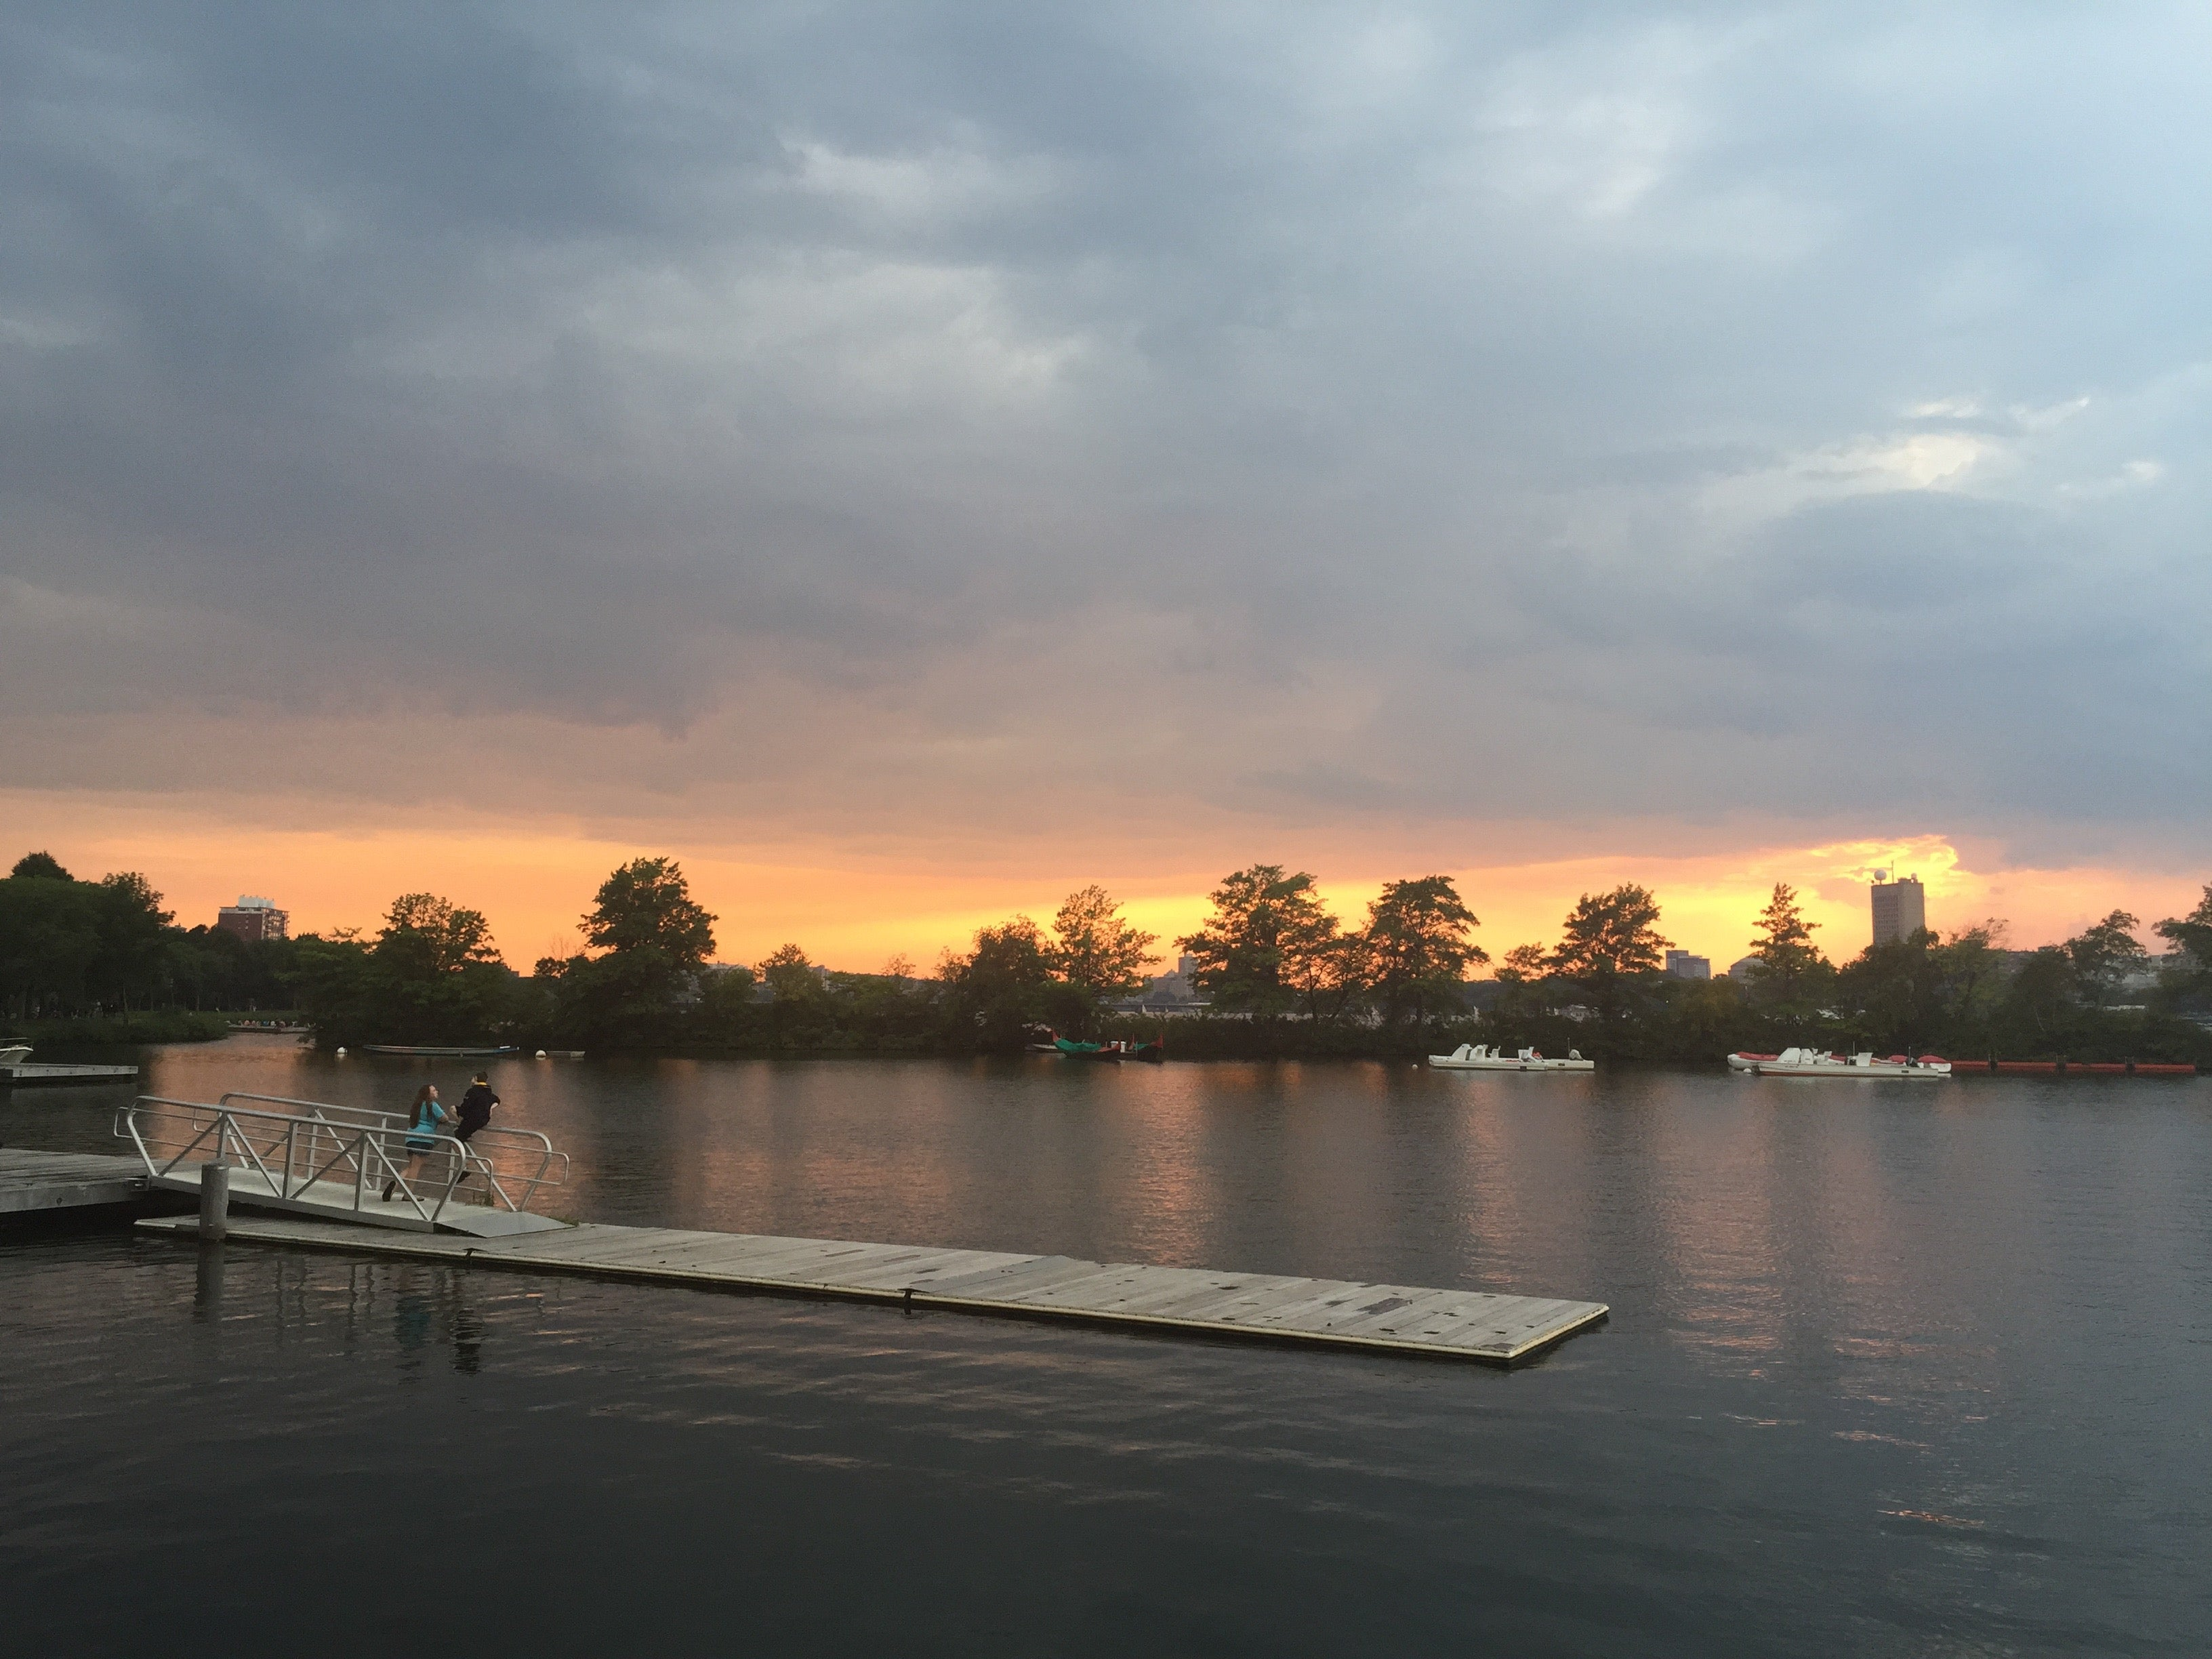 Just your typical sunset over the Charles.